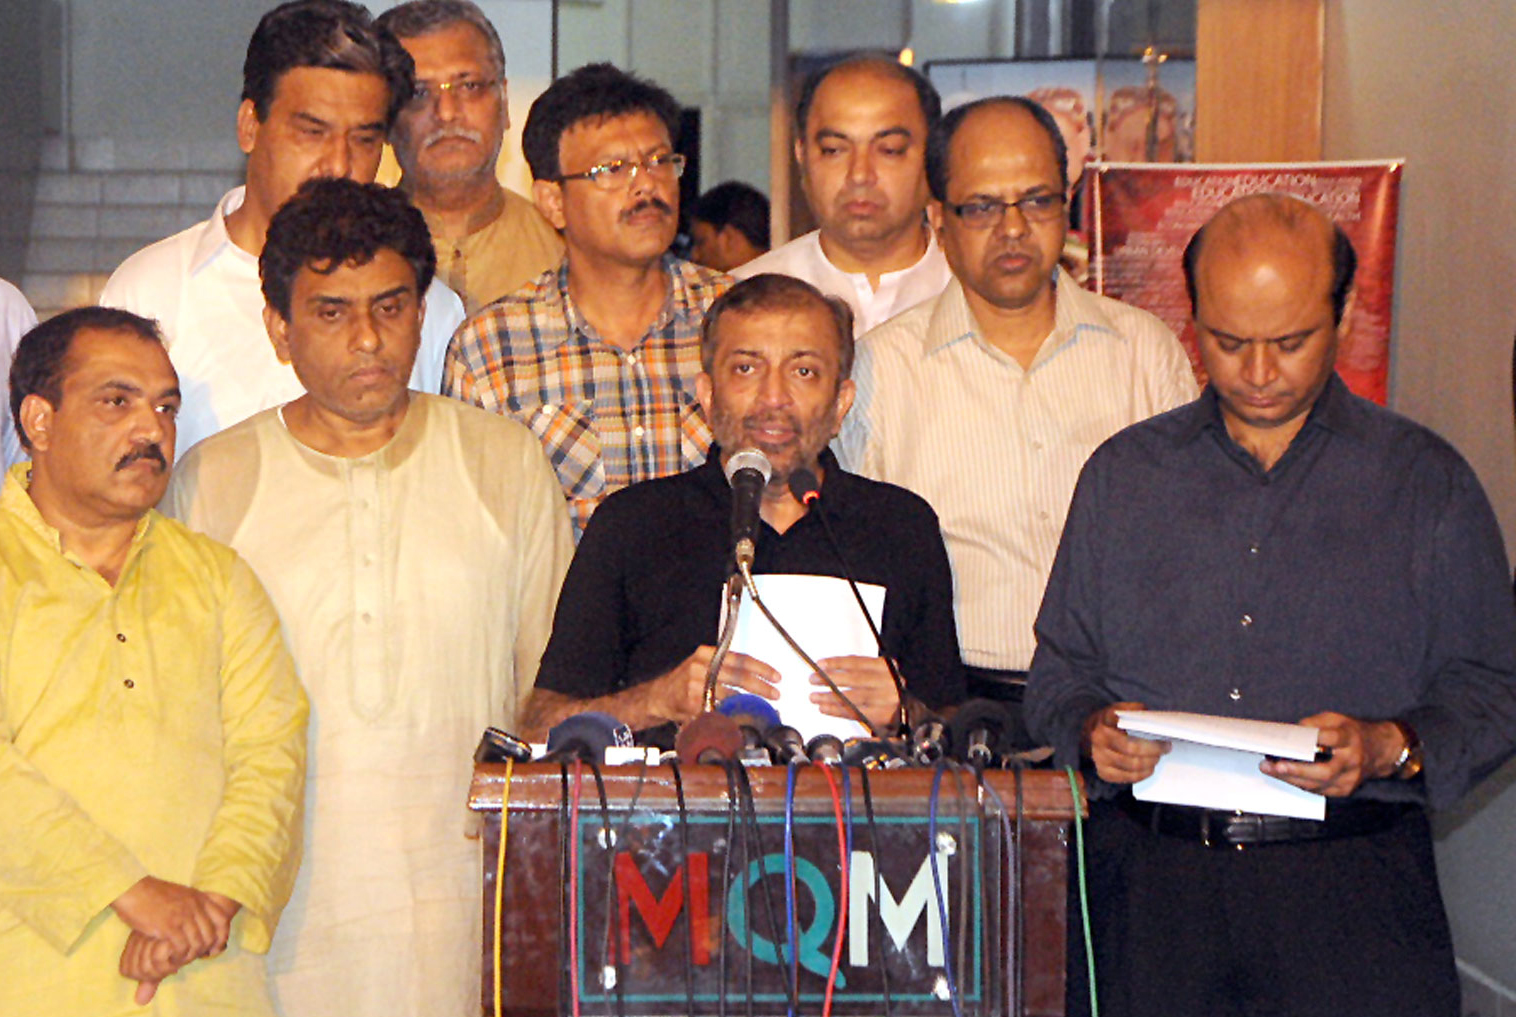 """""""We will take up democratic and legal means against Imran Khan. We will not reply to hatred with hatred,"""" says Dr Farooq Sattar. PHOTO: MQM"""